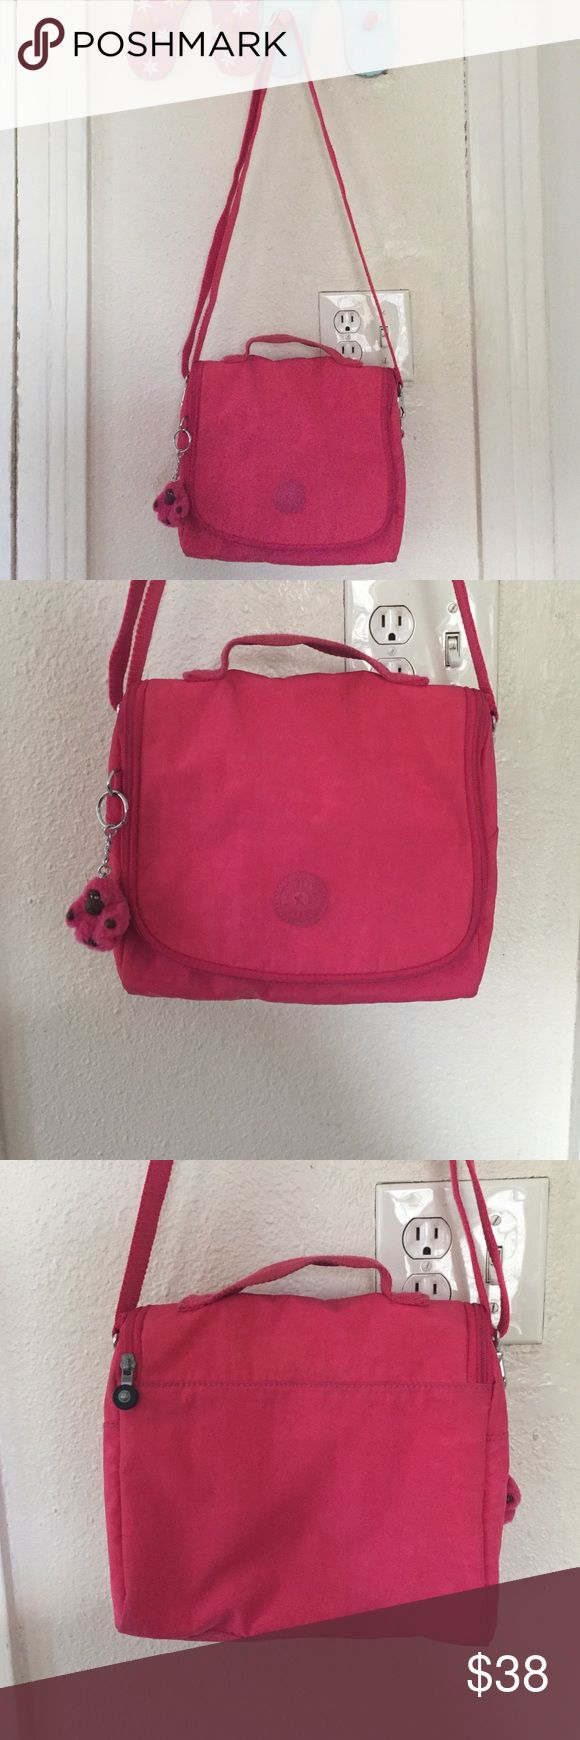 25 best ideas about kipling backpack on pinterest school handbags - Kipling Lunch Bag Hot Pink Kipling Kichirou Insulated Lunch Bag In Great Conditions Just A